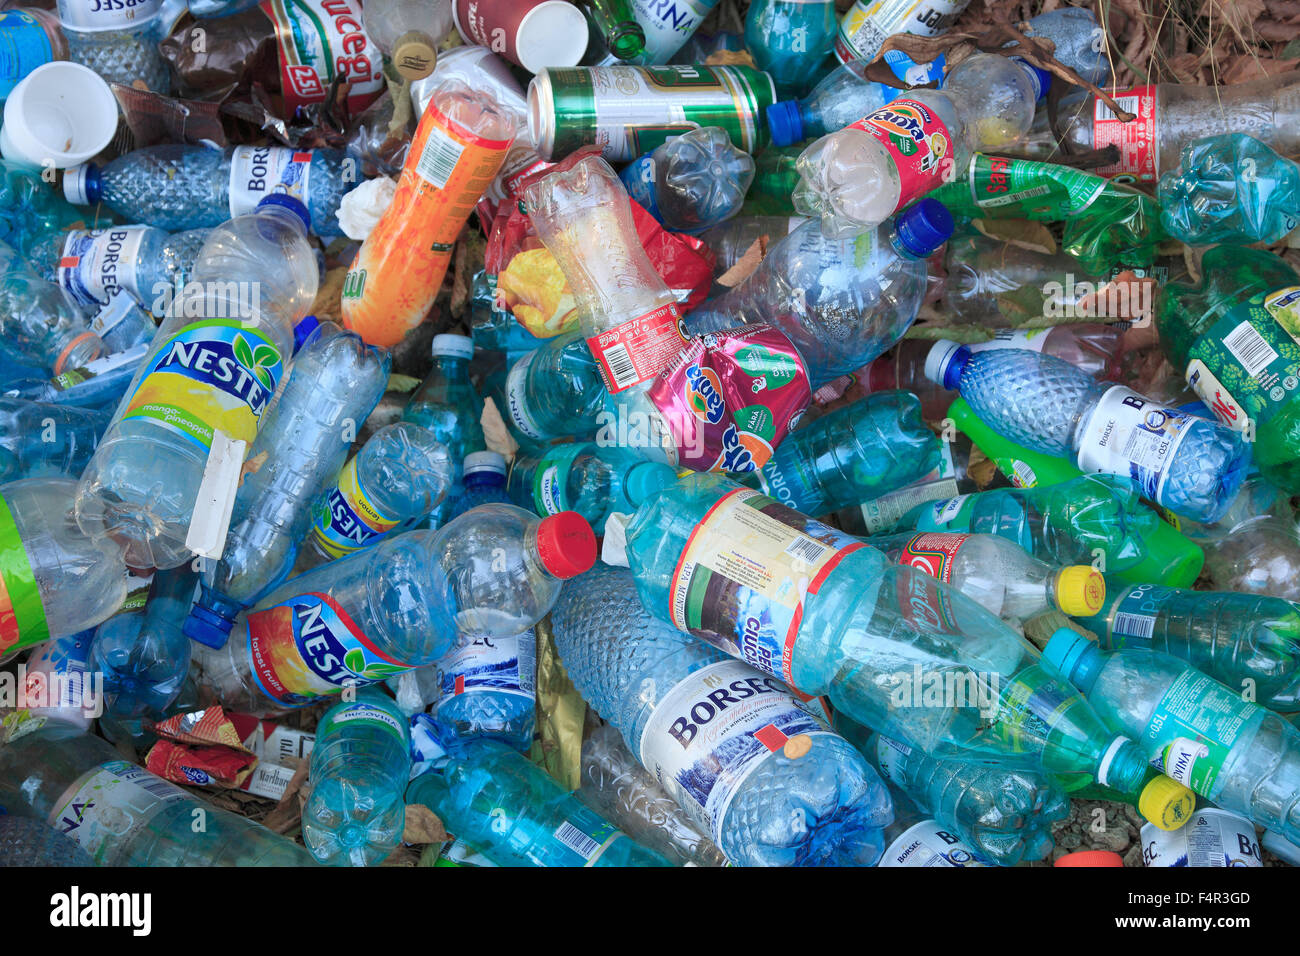 Plastic bottles, pollution, illegal waste disposal, - Stock Image